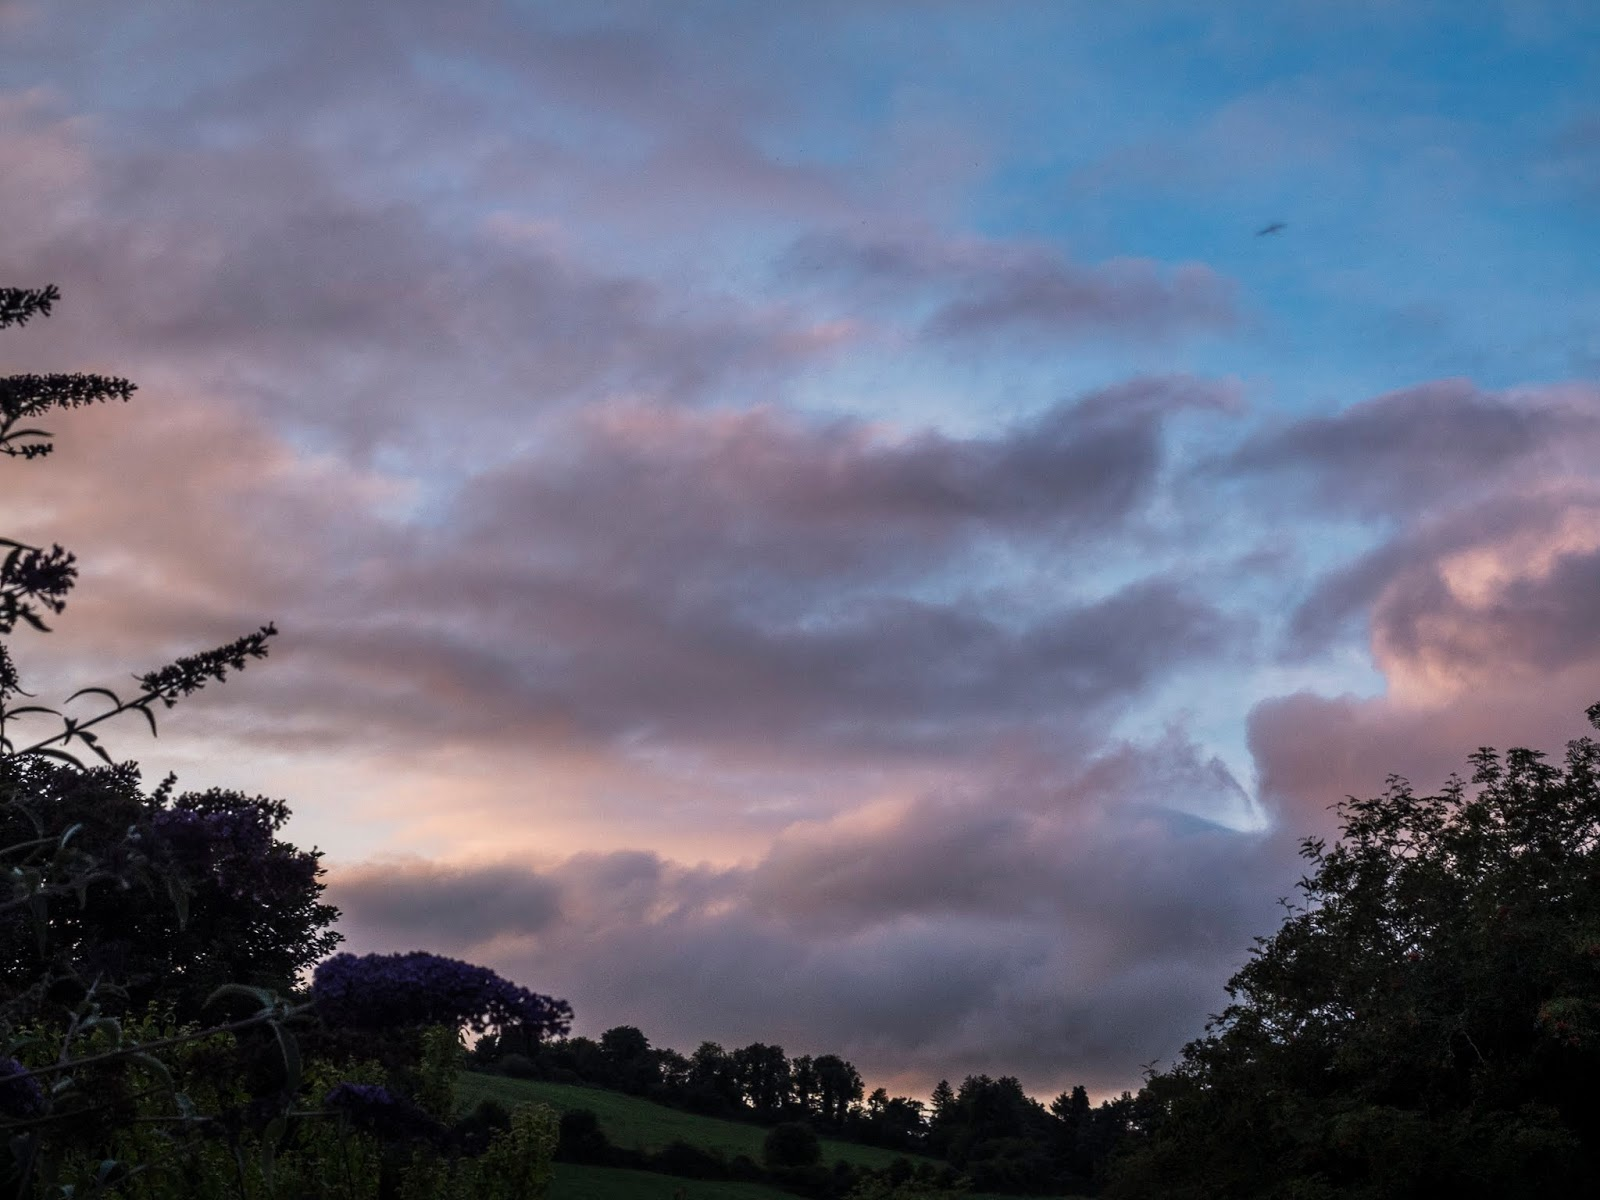 Sunset clouds over some trees and flowers in a valley in County Cork.